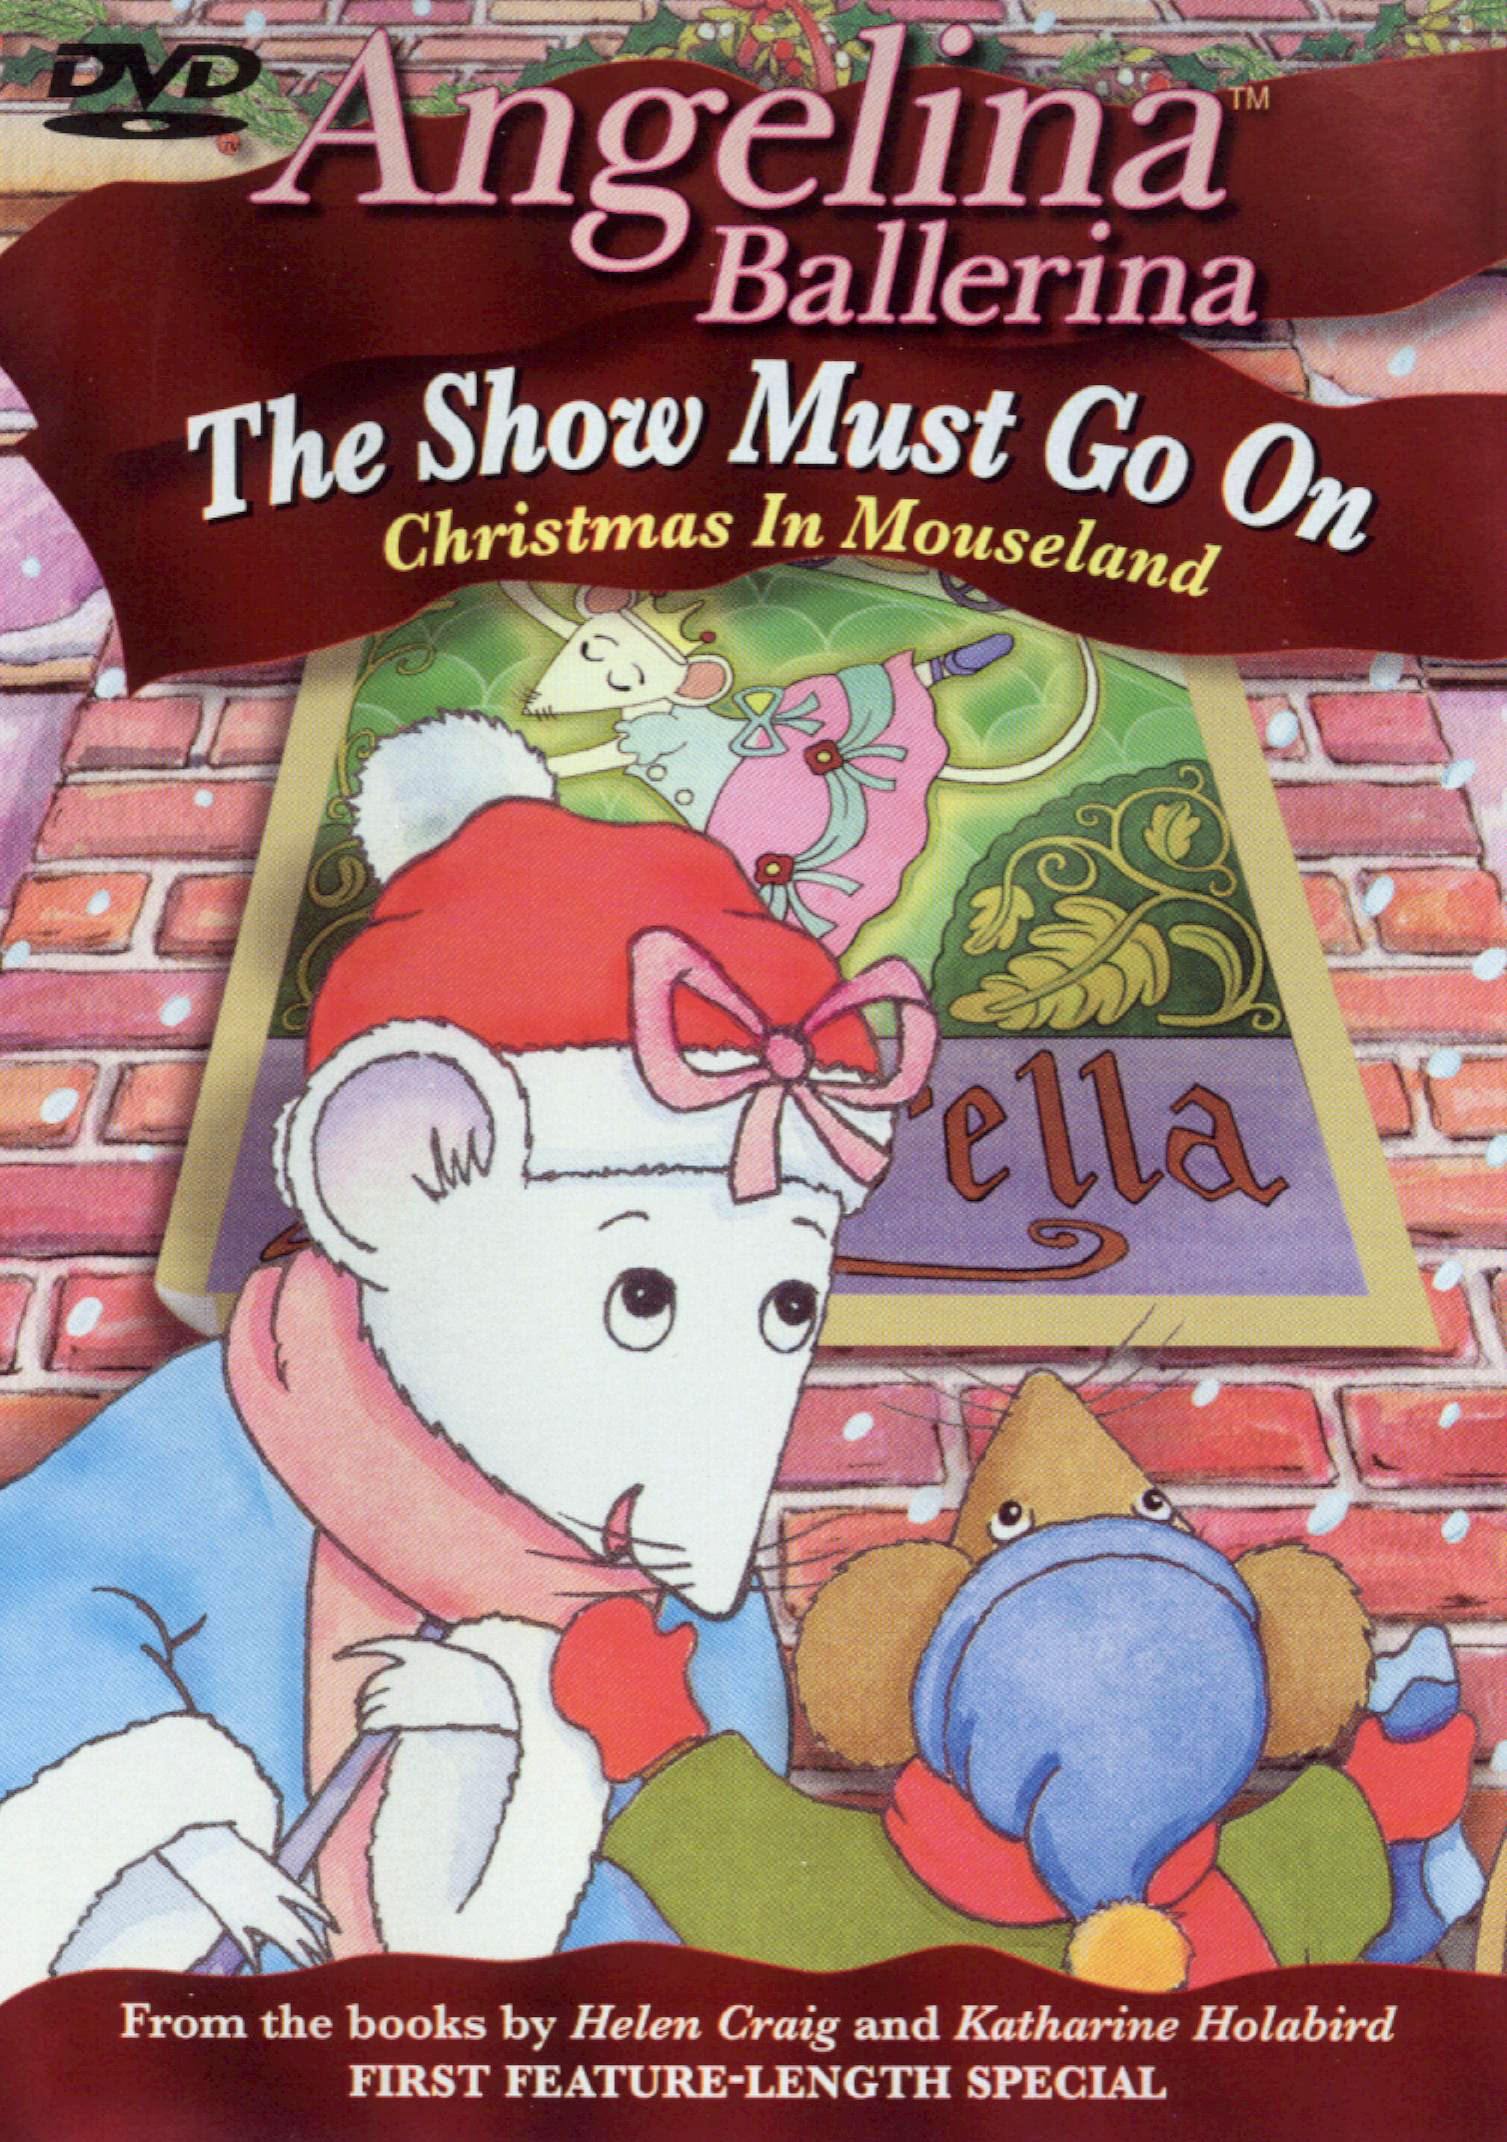 Angelina Ballerina: The Show Must Go On - Christmas in Mouse Land